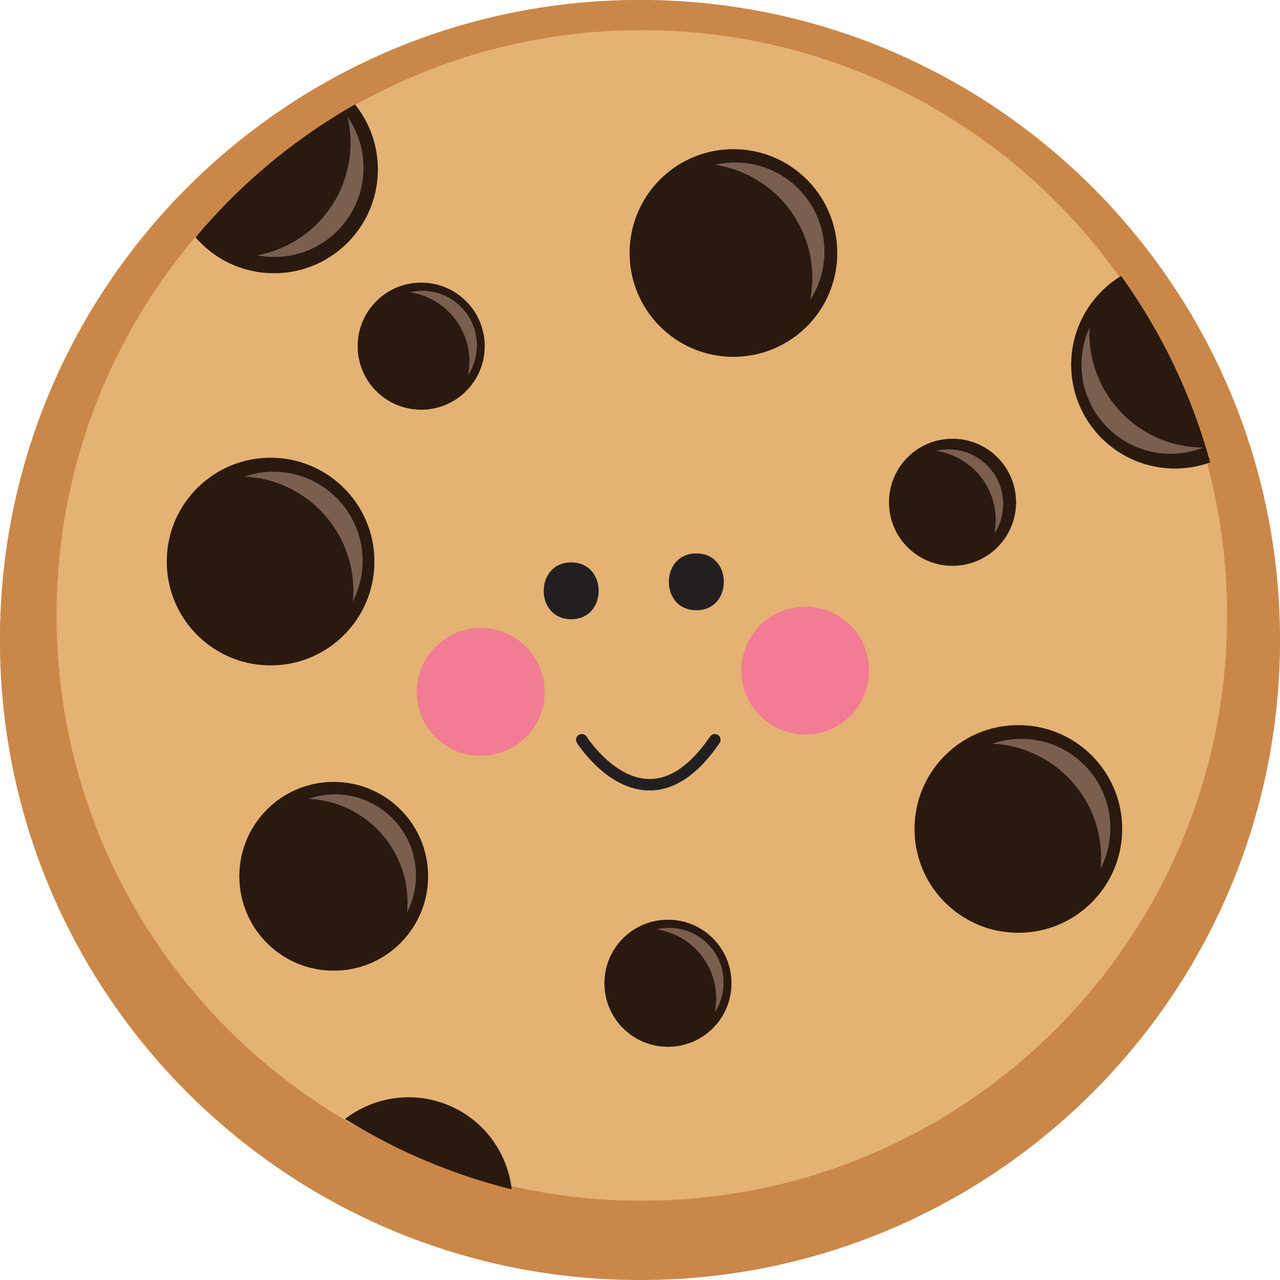 Amd clipart cookie For off Cookie PPbN cookie